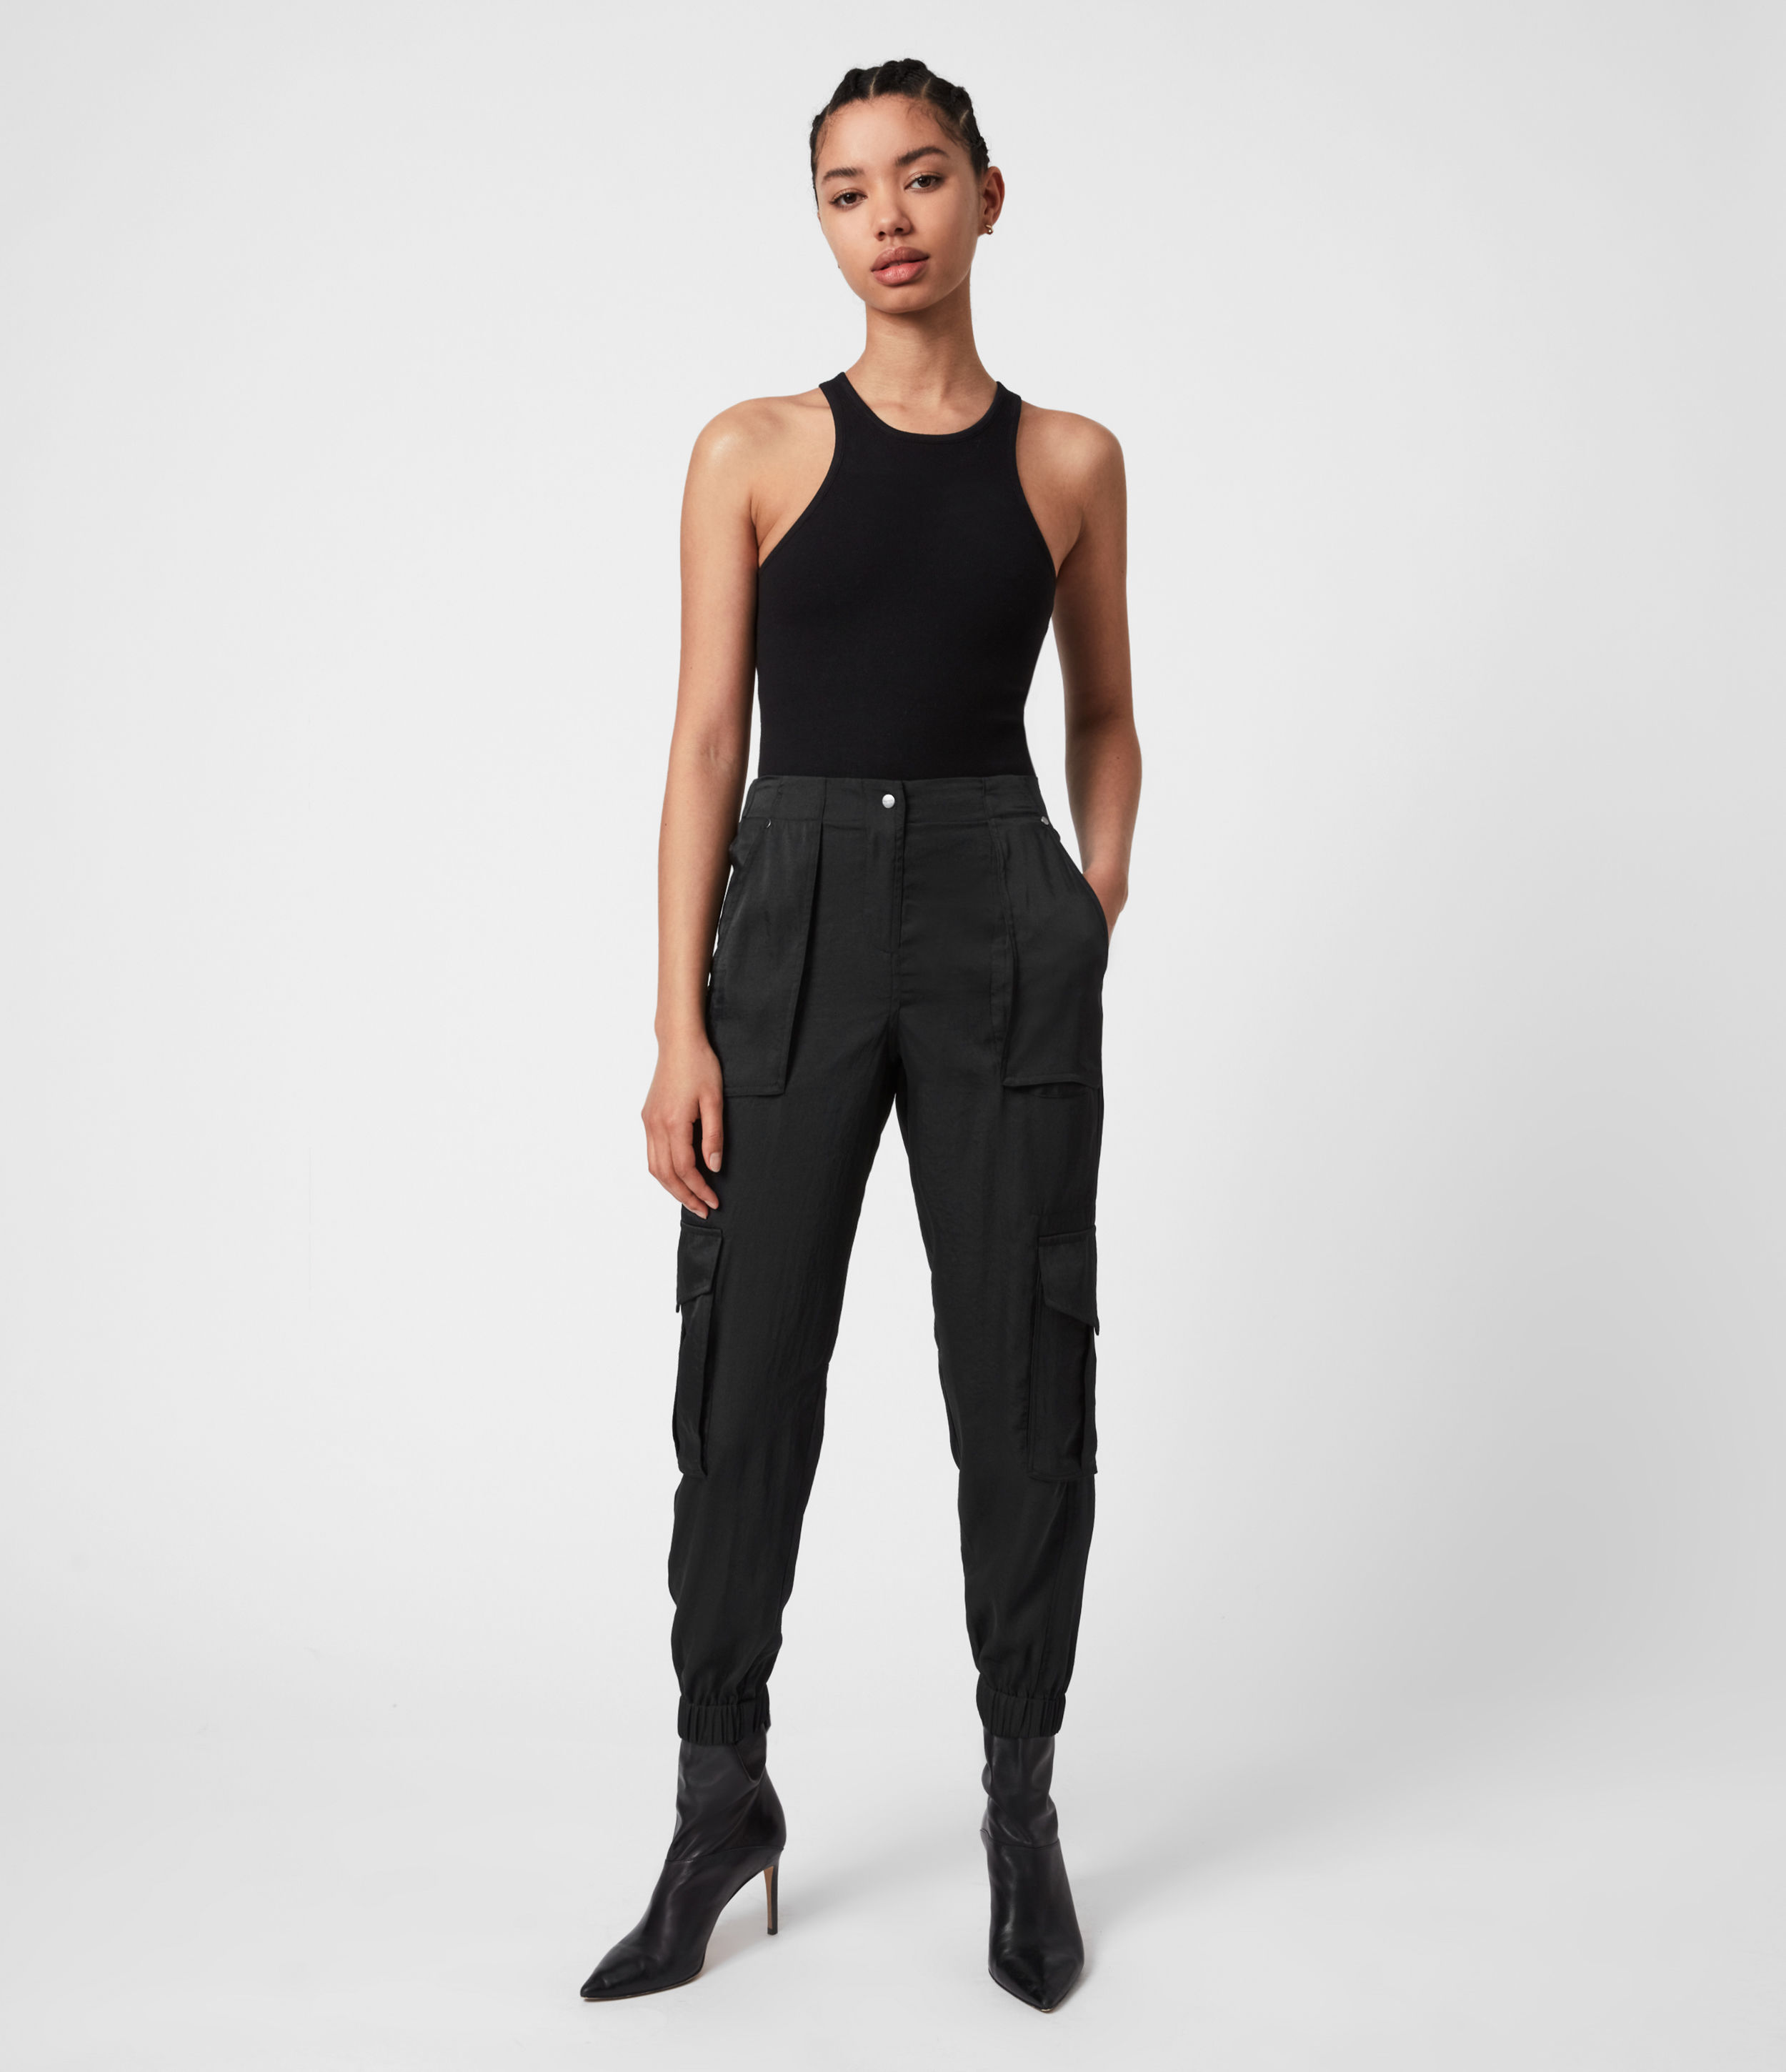 AllSaints Womens Frieda Mid-Rise Cuffed Trousers, Black, Size: 8